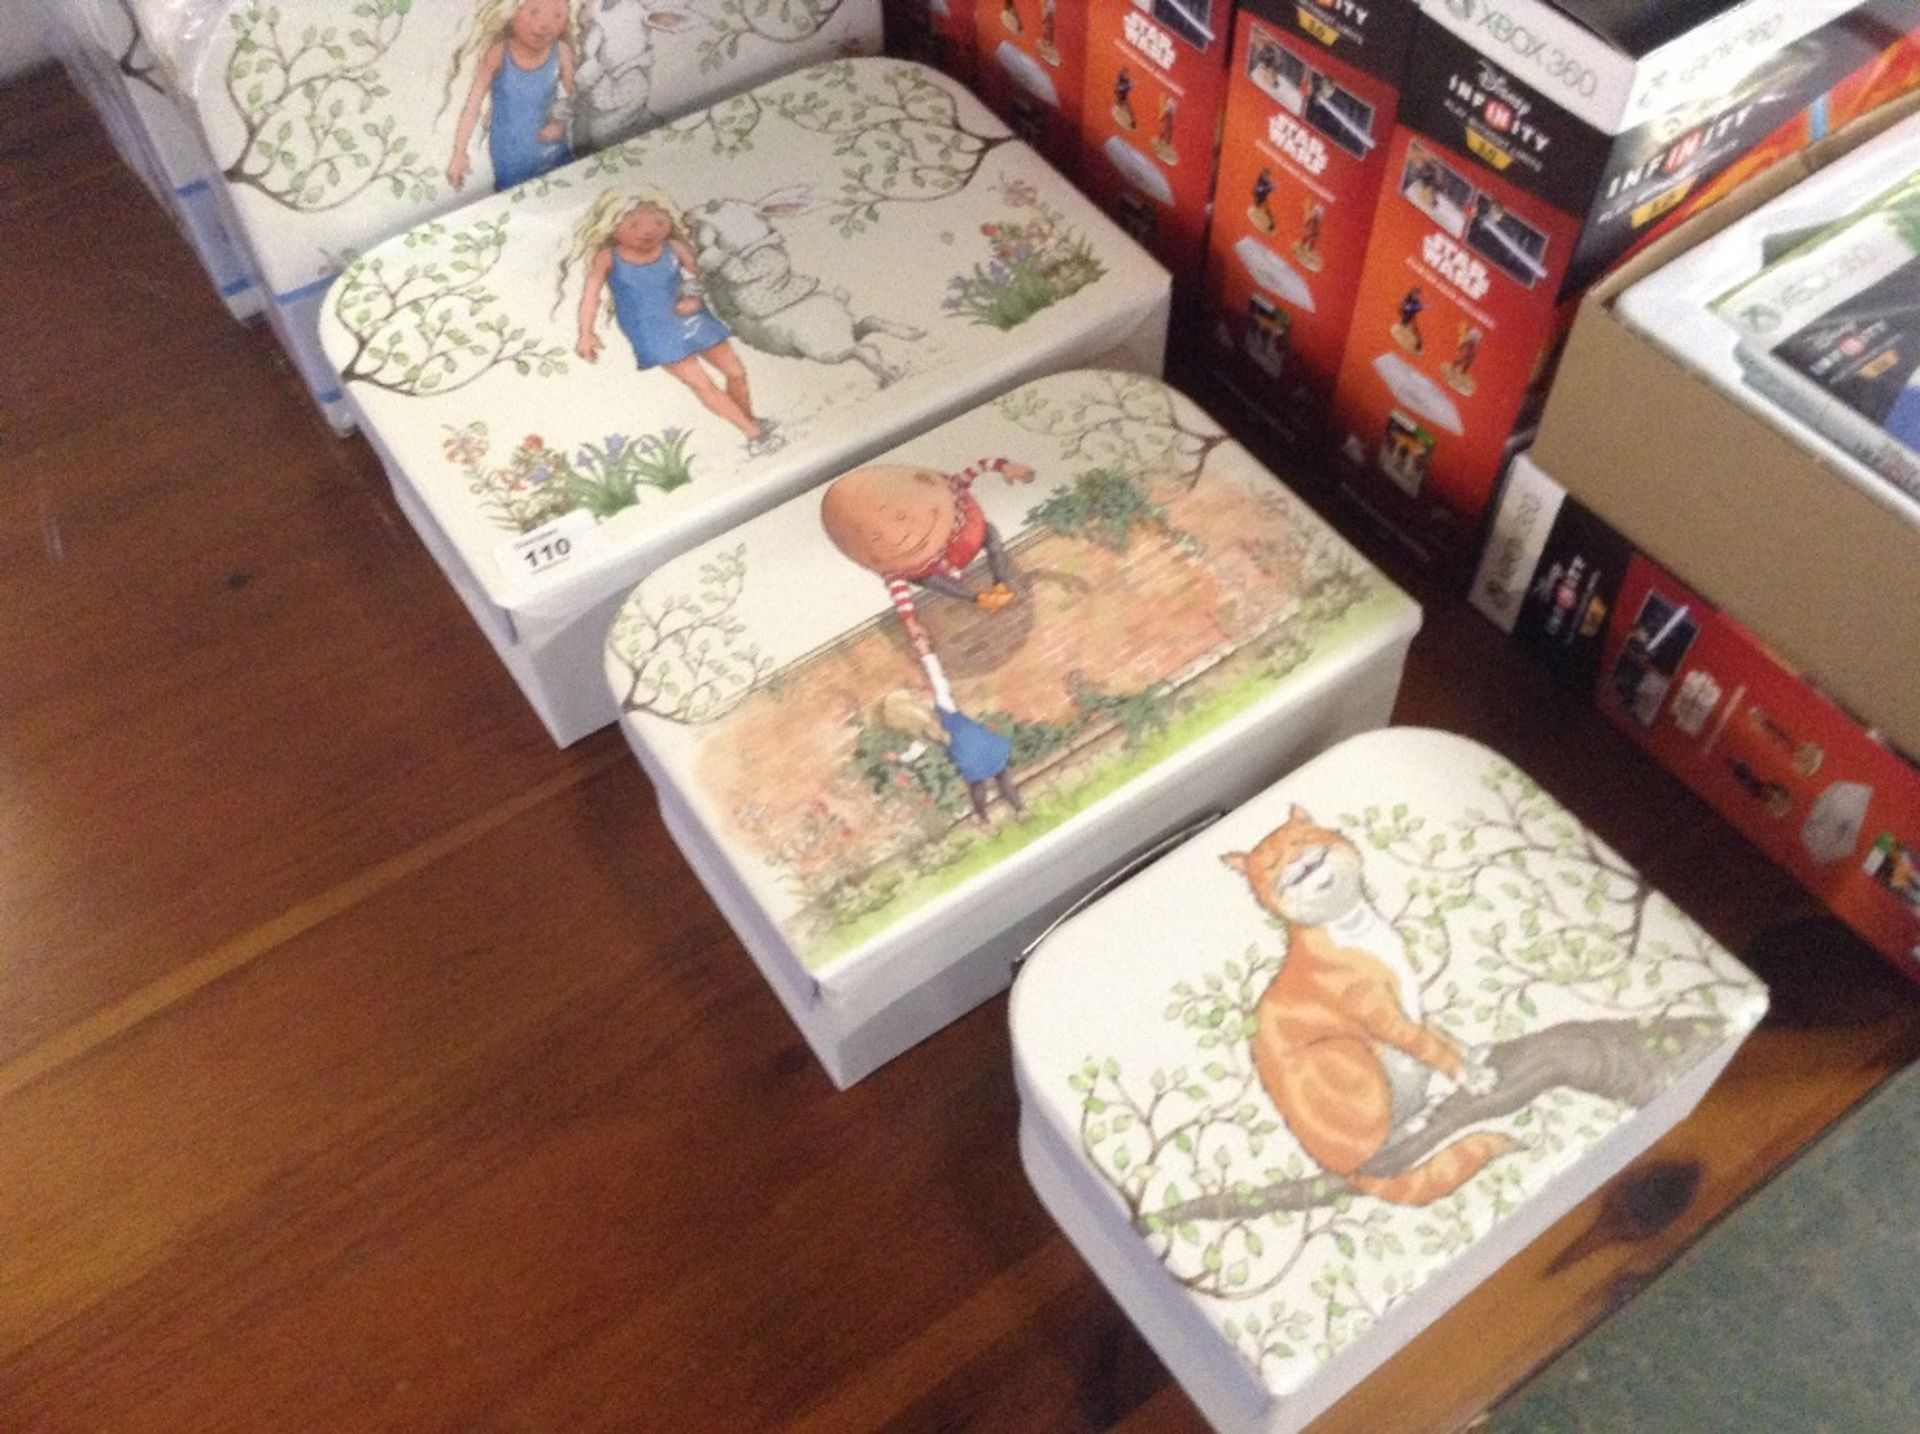 Lotto 106 - SET OF 3 ALICE IN WONDERLAND STORAGE BOXES